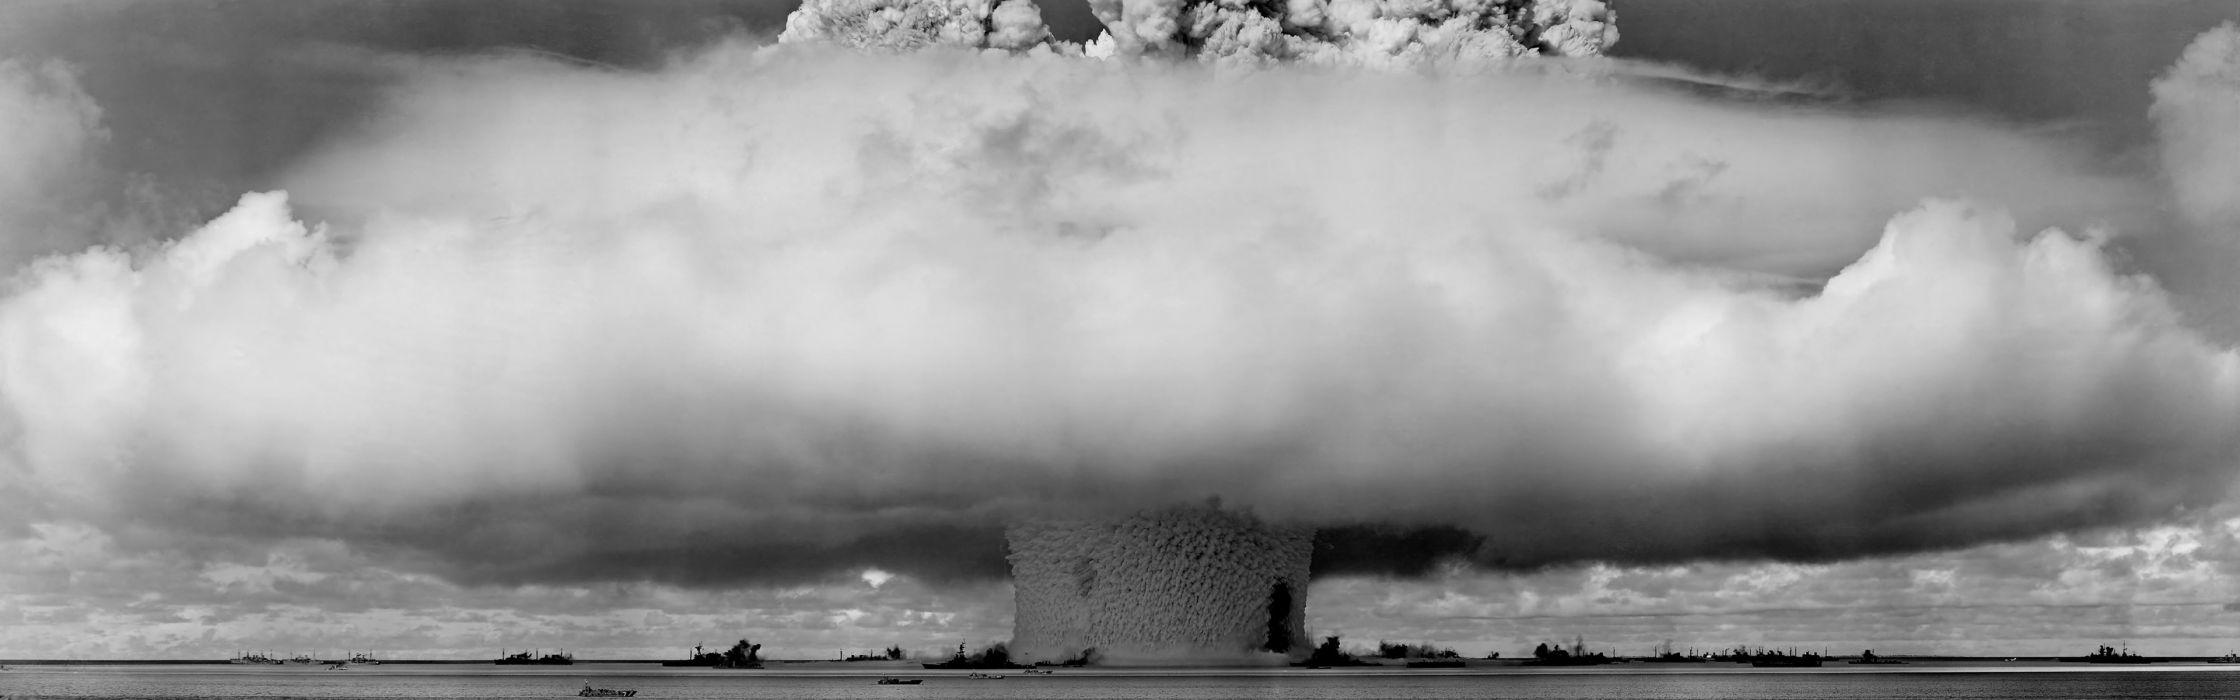 Explosions mushrooms grayscale monochrome nuclear explosions wallpaper